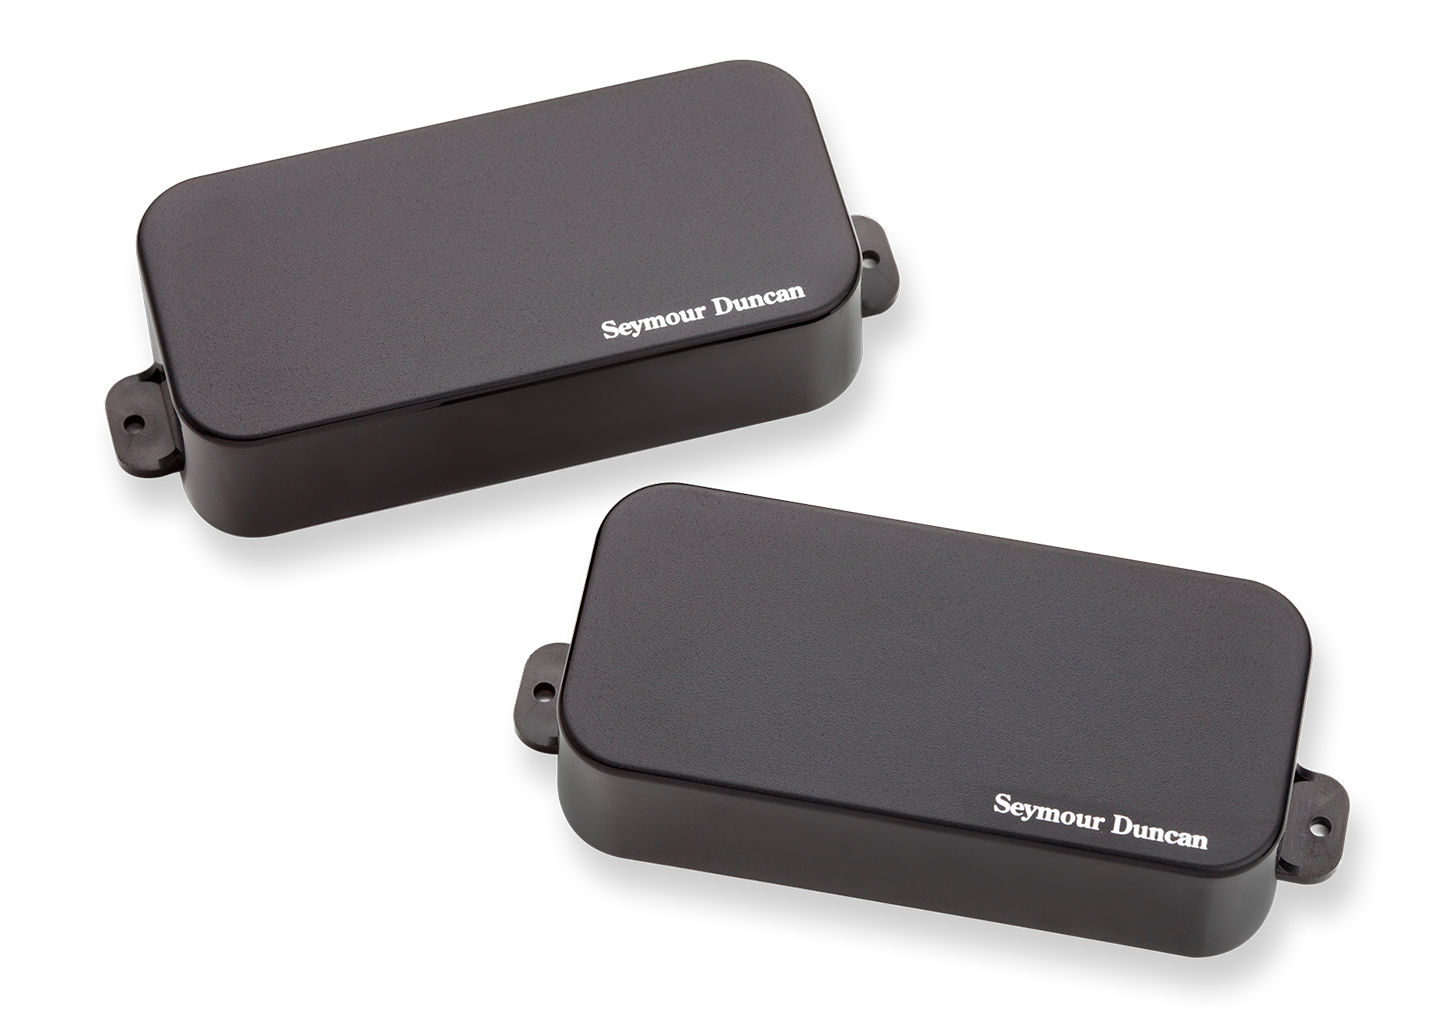 Seymour Duncan Blackouts AHB-1S 7 String Phase I Passive Mount Set